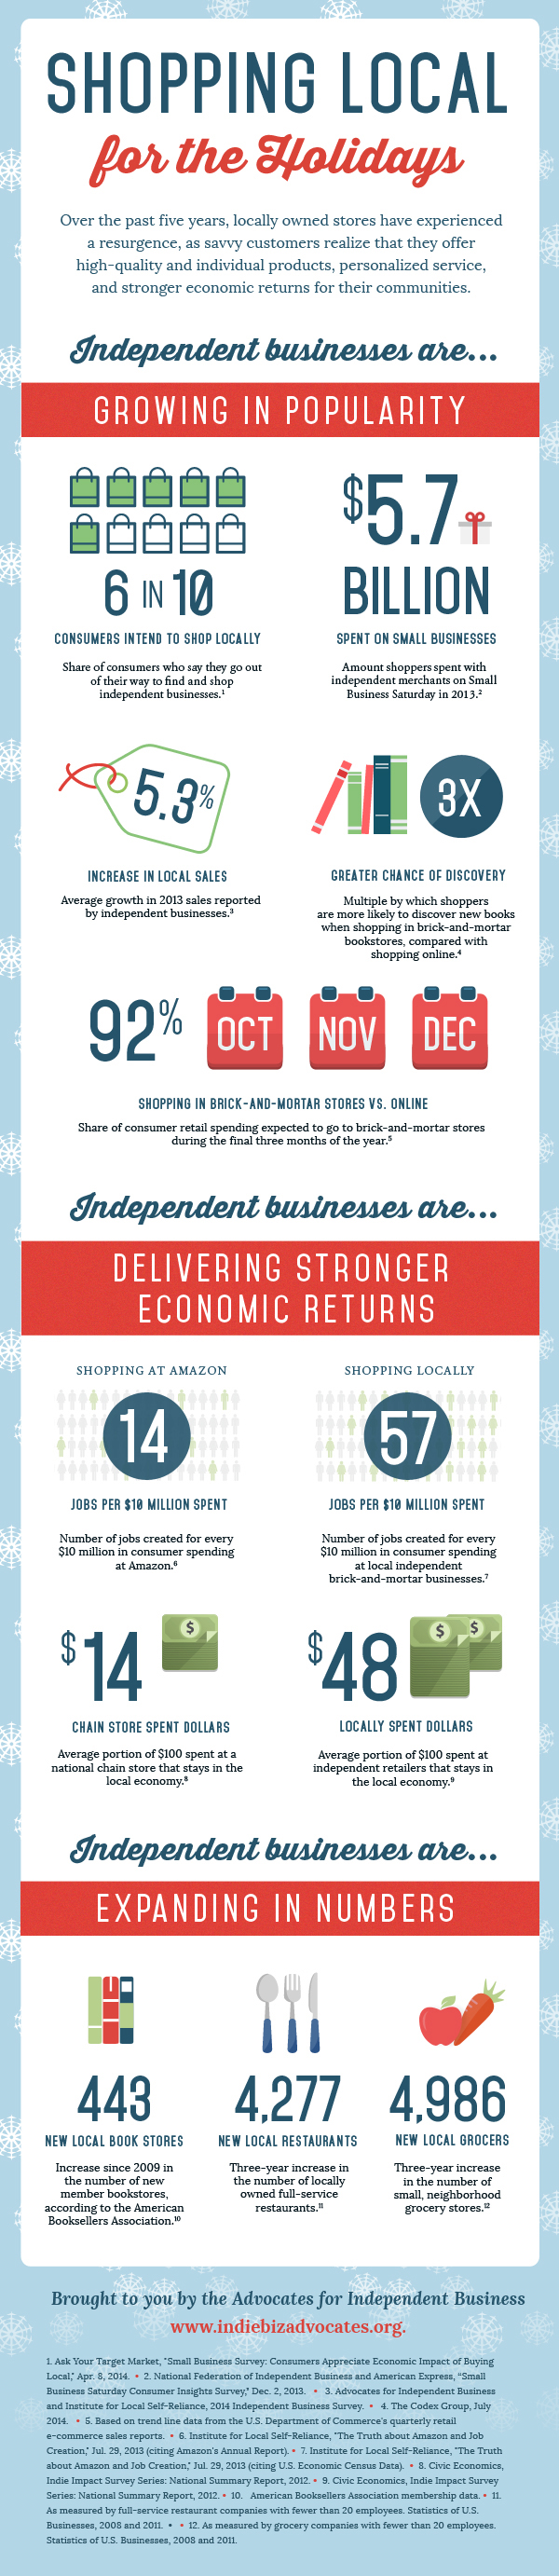 holidayshopping_infographic